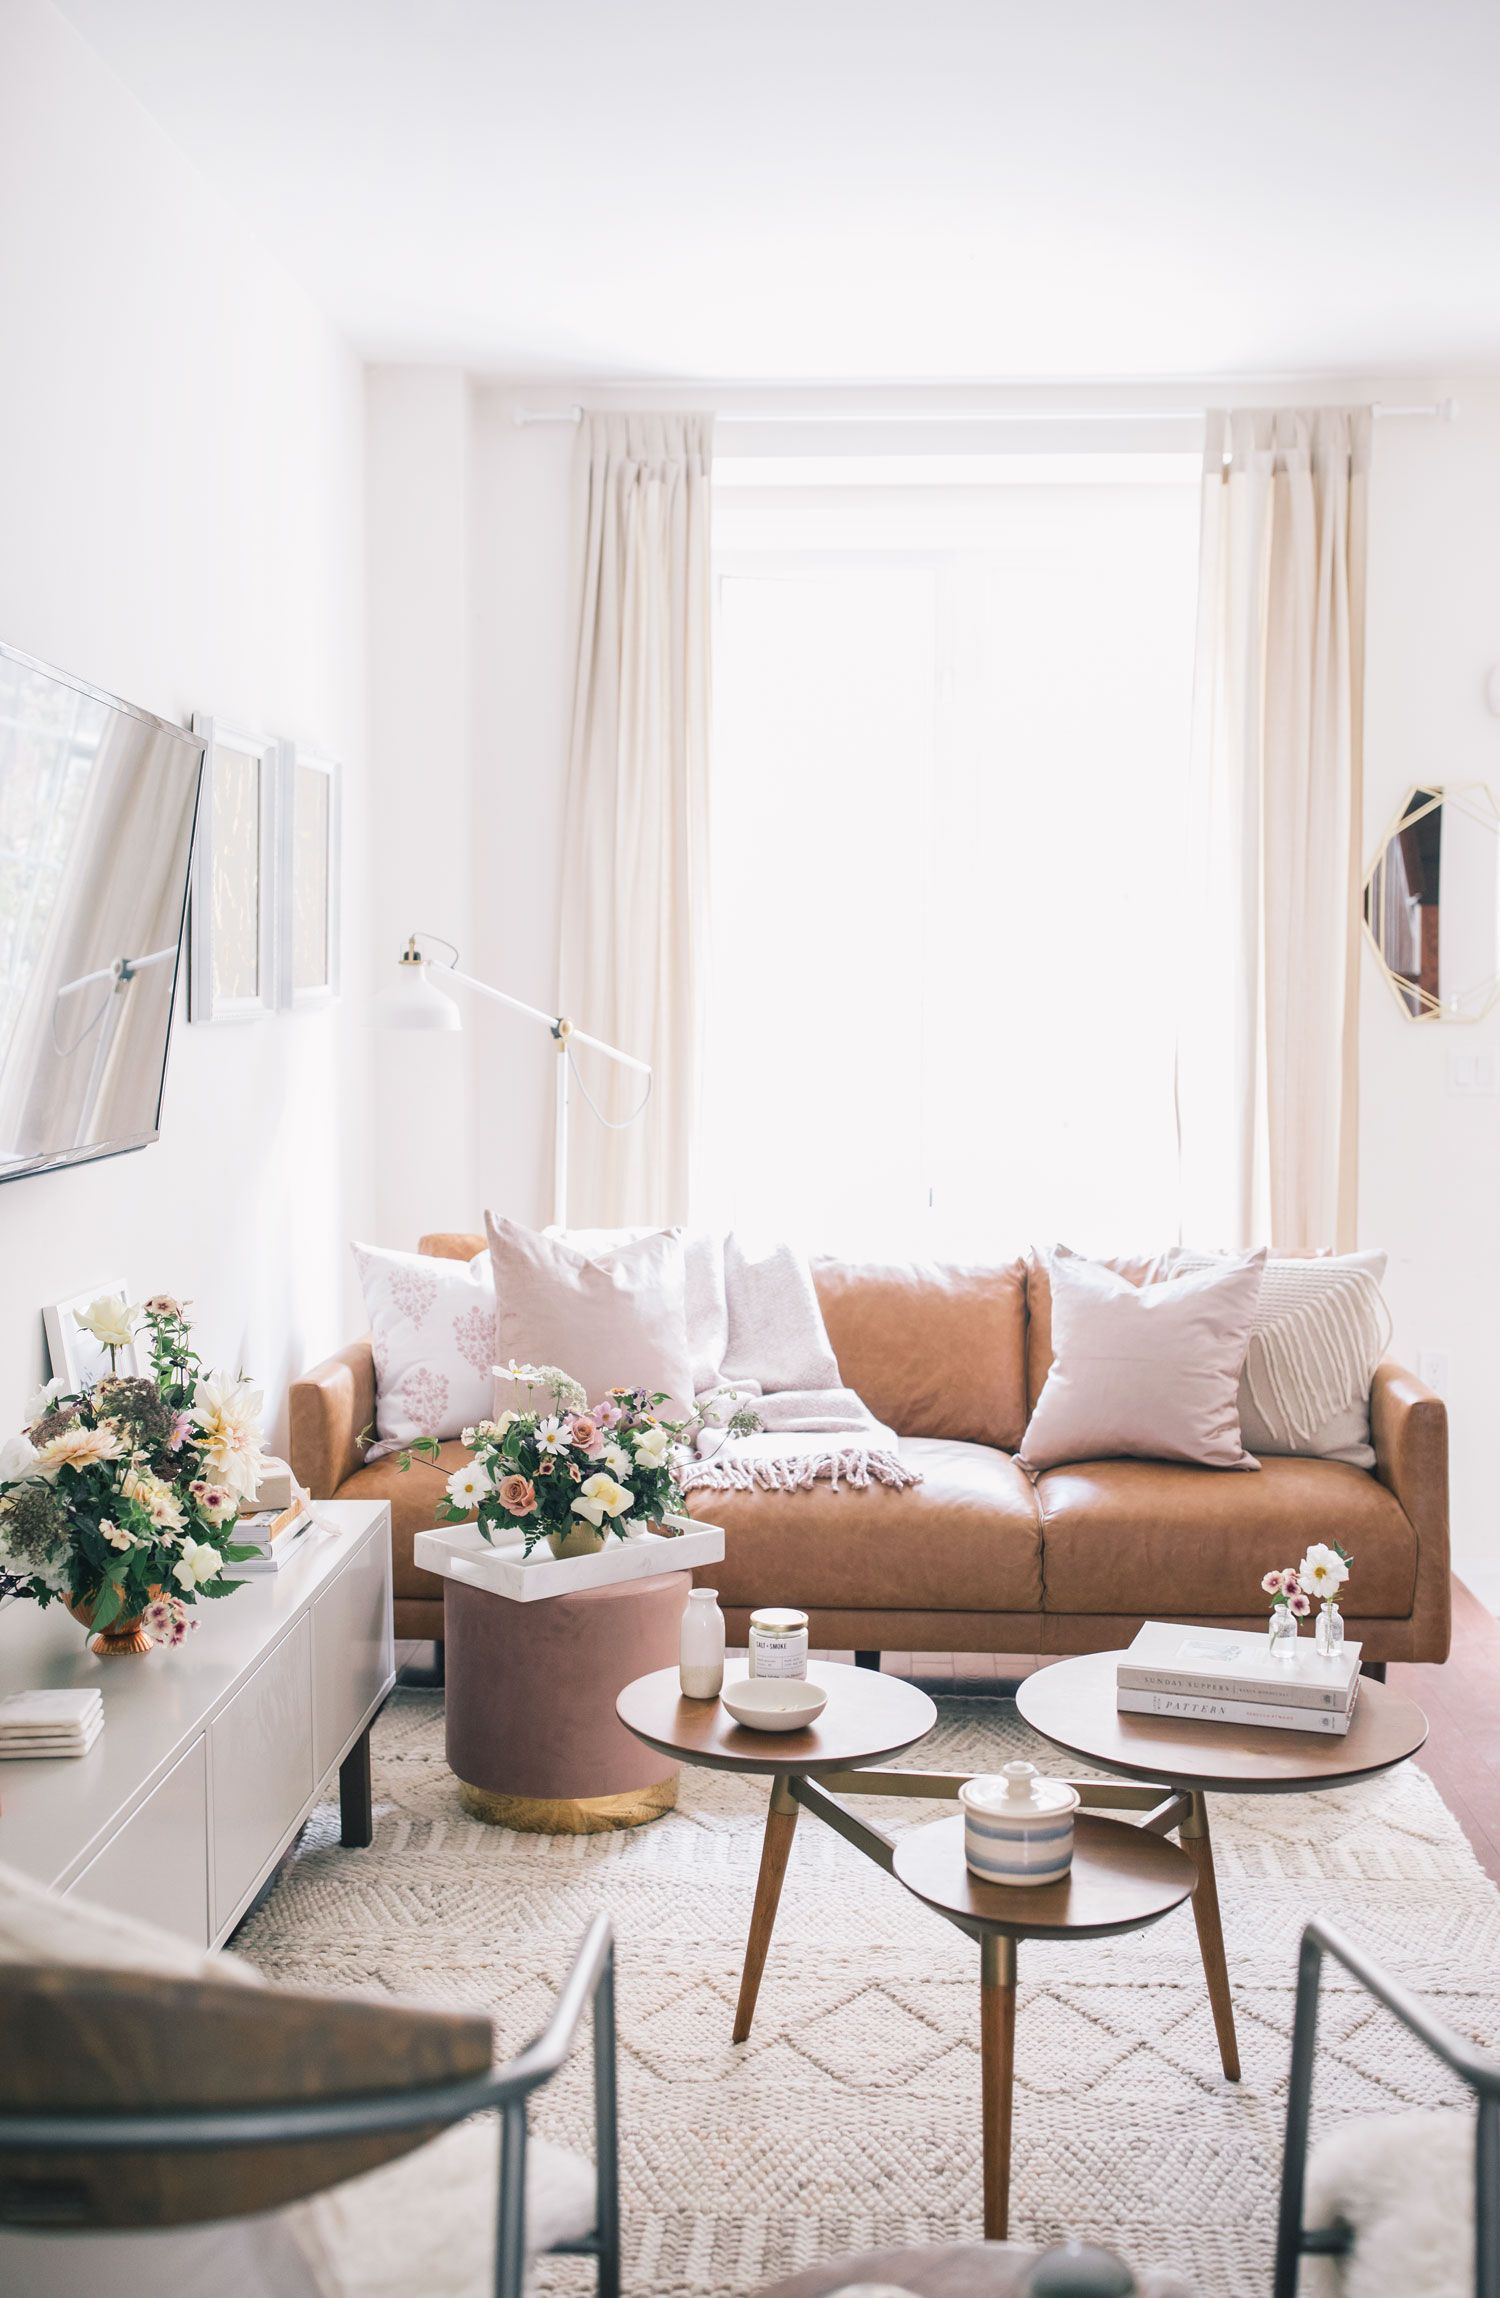 How To Create Your Very Own Living Room Sanctuary The Blonlocks Life Style